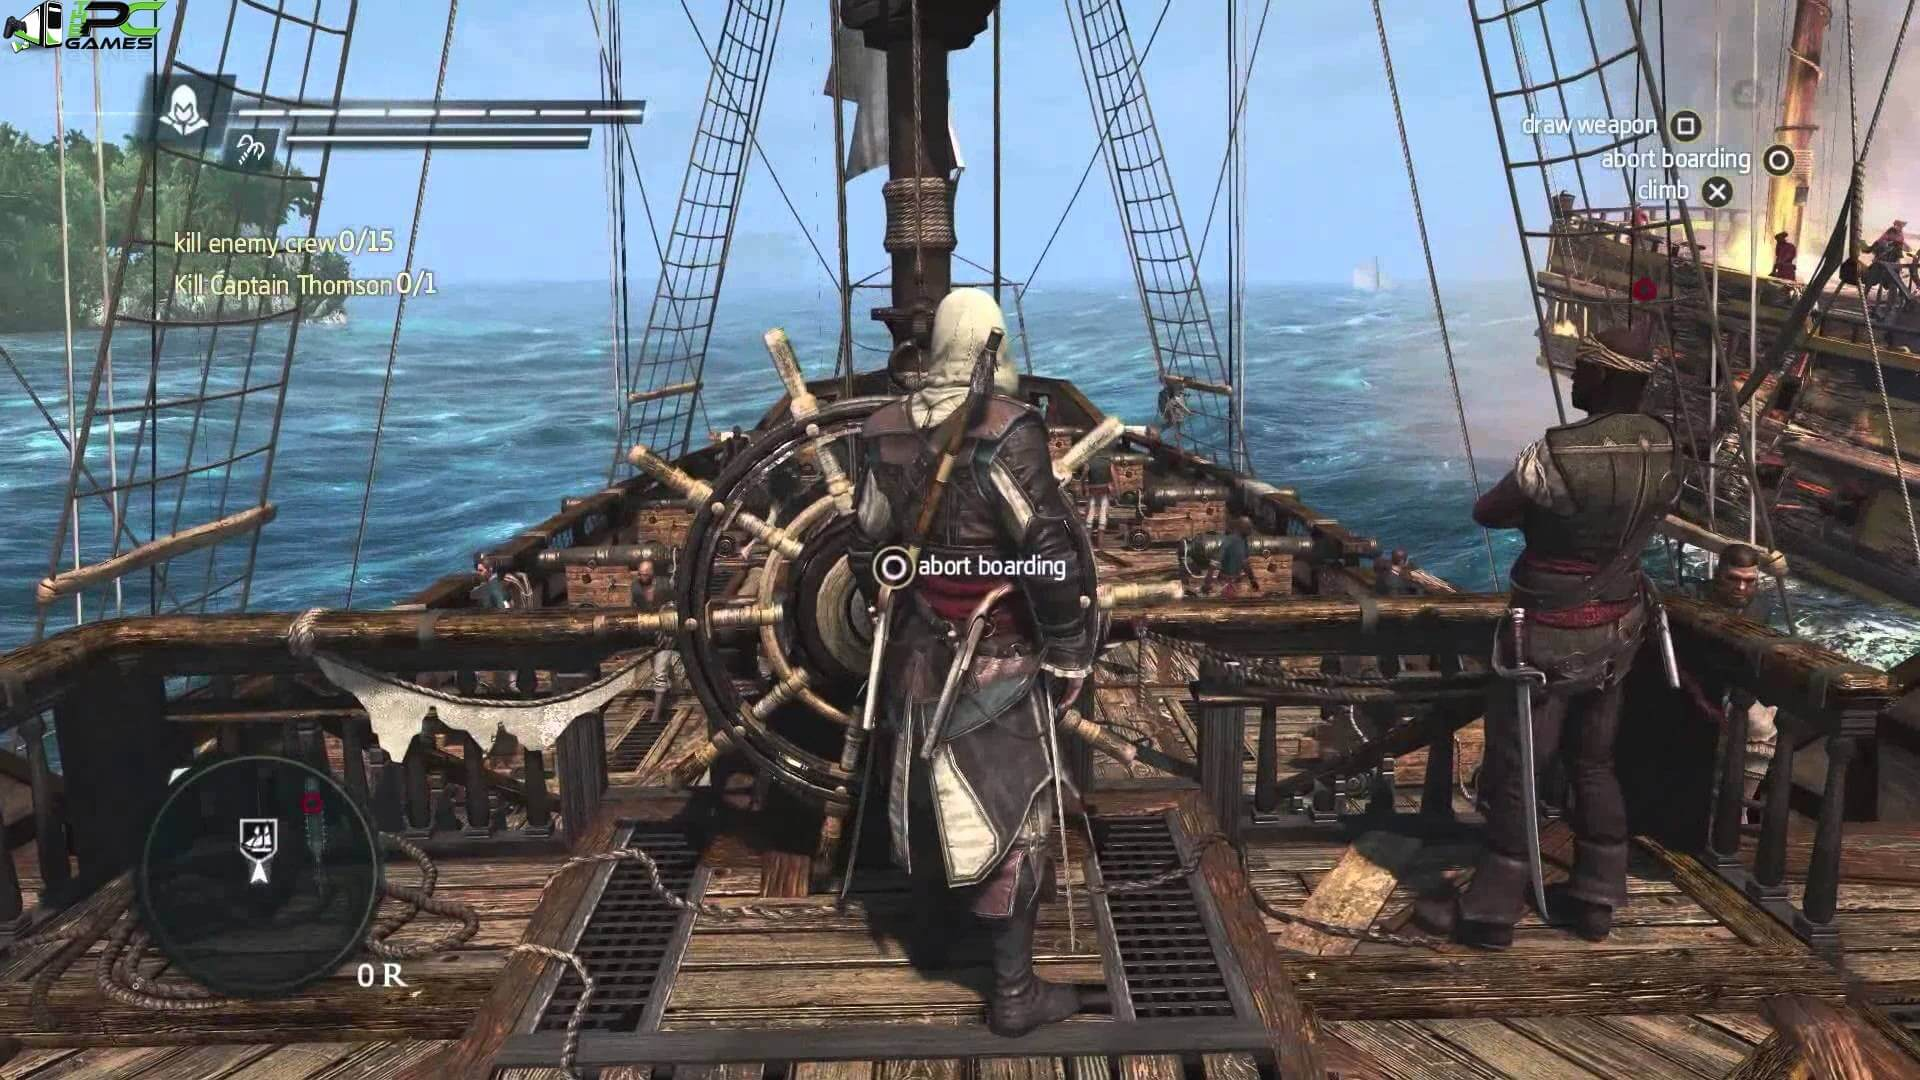 Assassin's Creed IV Black Flag Jackdaw Edition Download